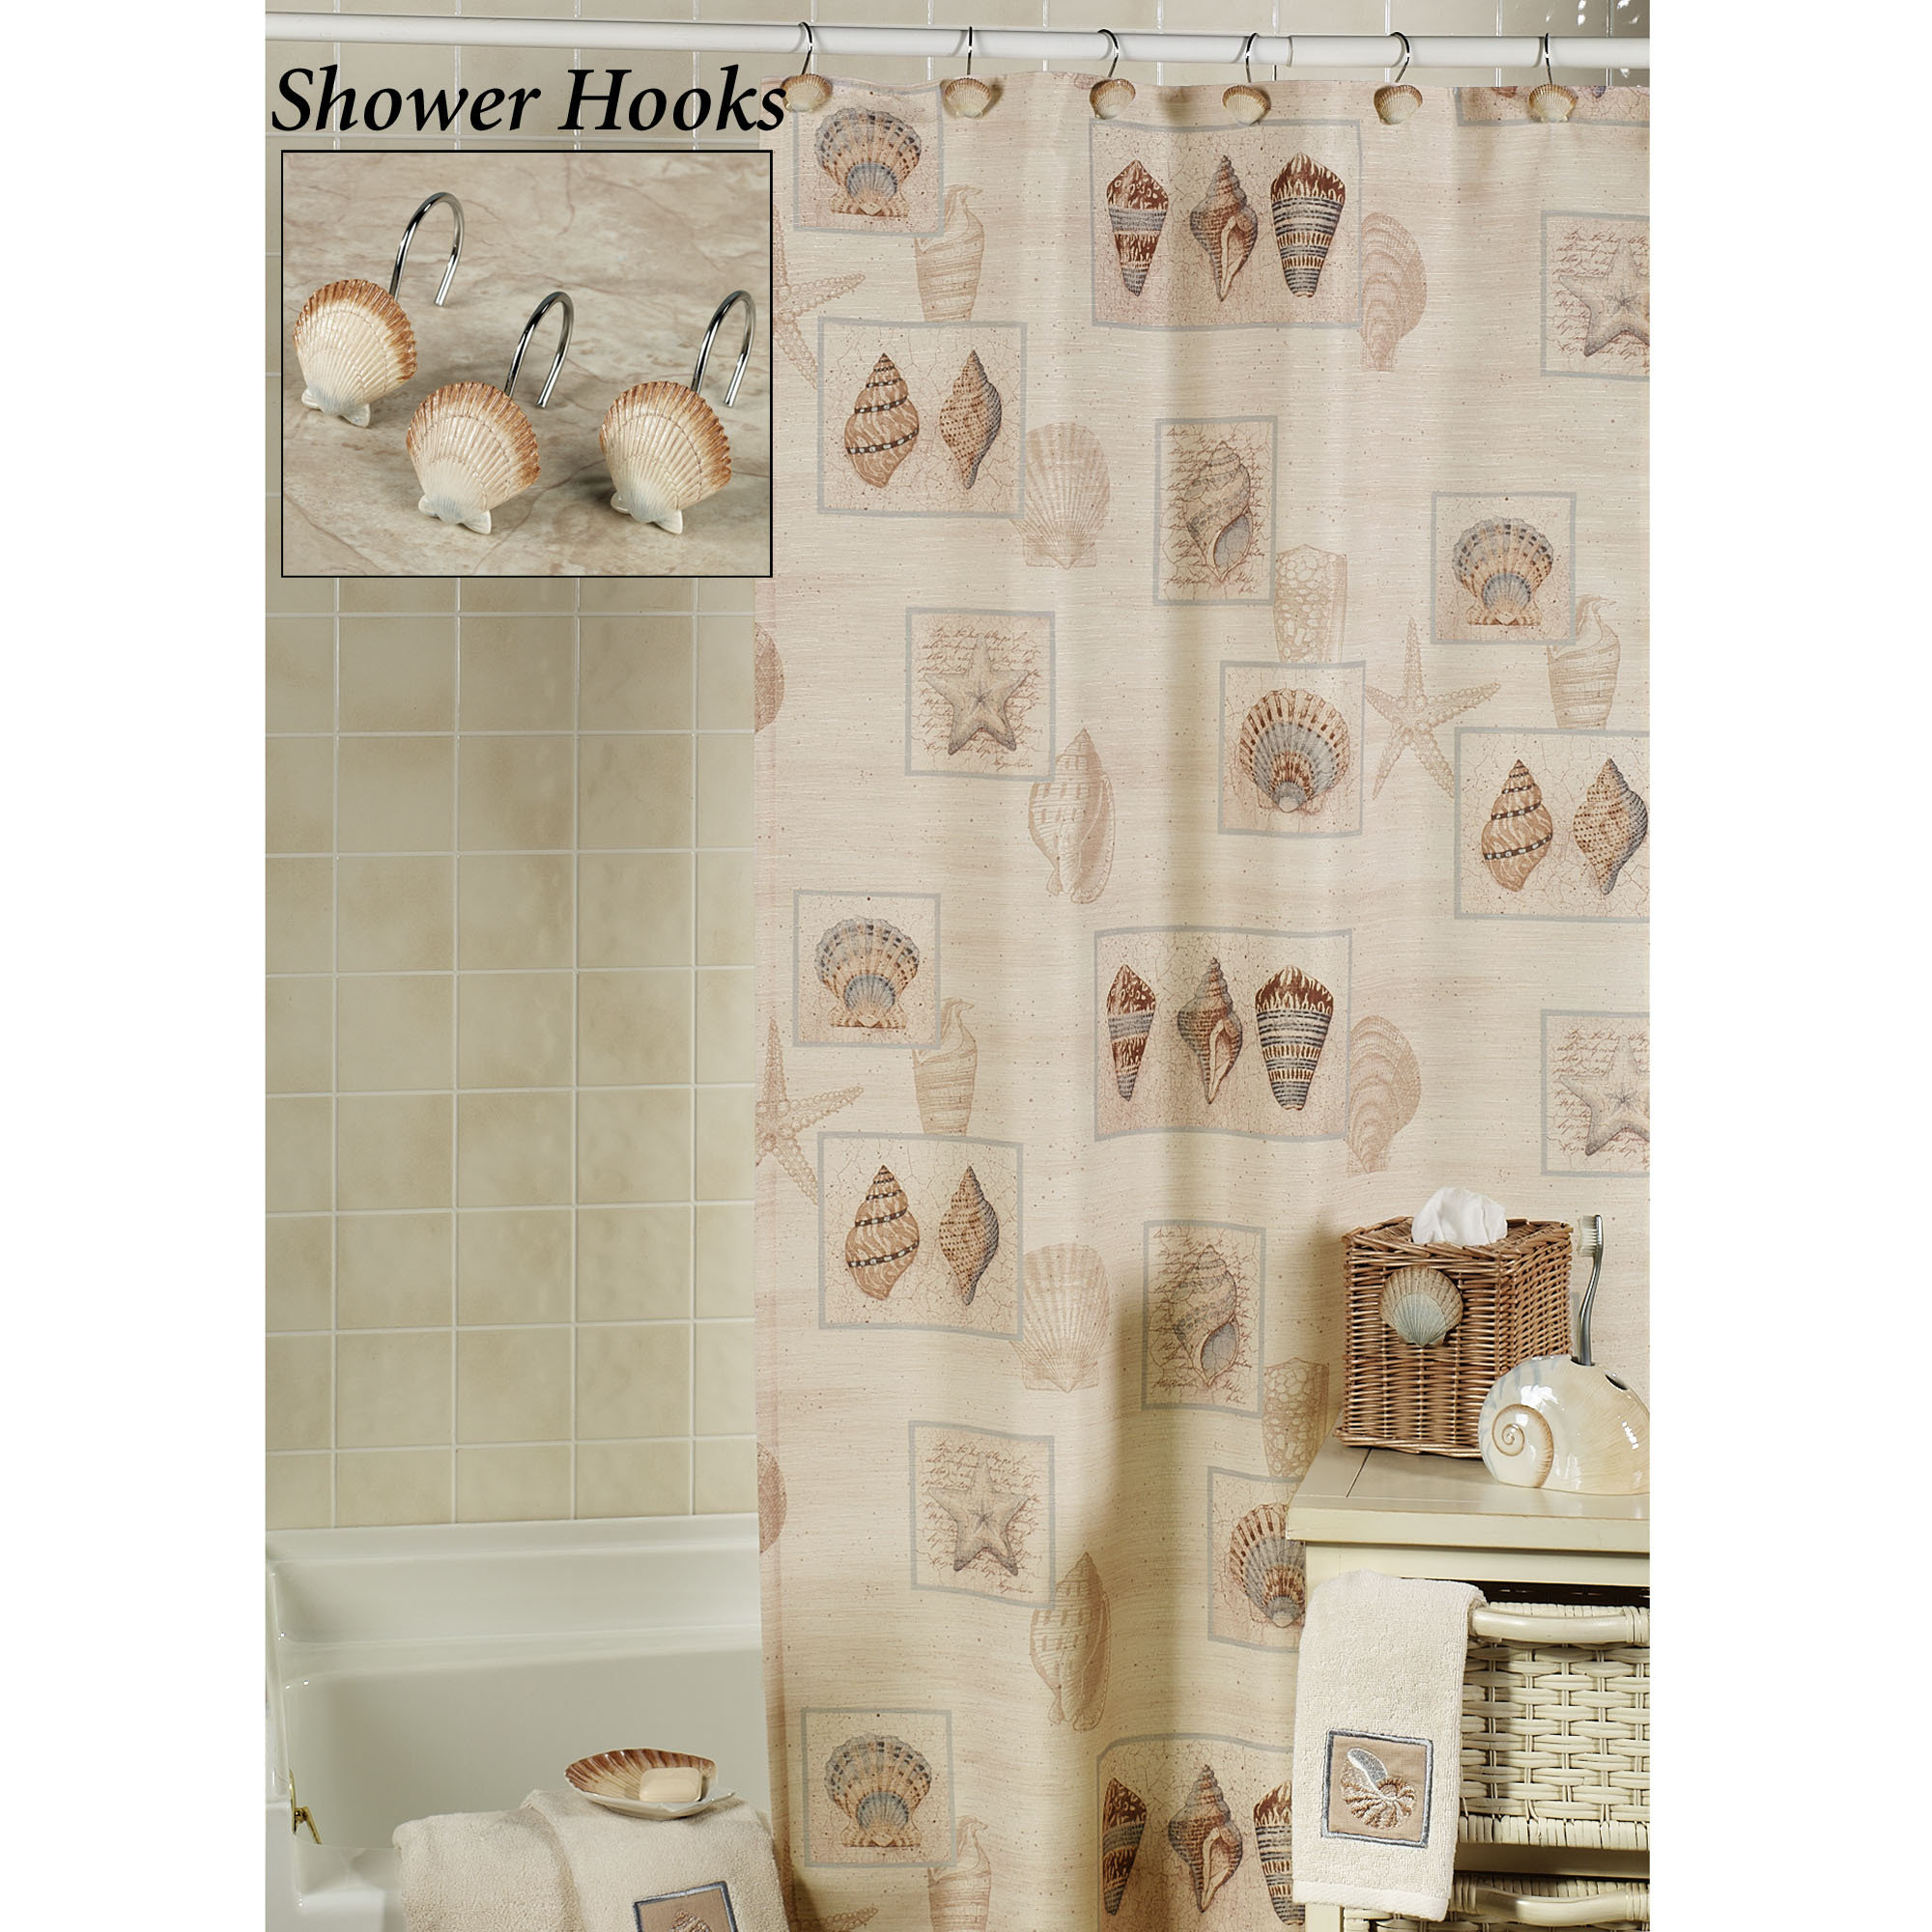 Best Silver Seashell Shower Curtain Hooks Seashell Shower within size 2000 X 2000